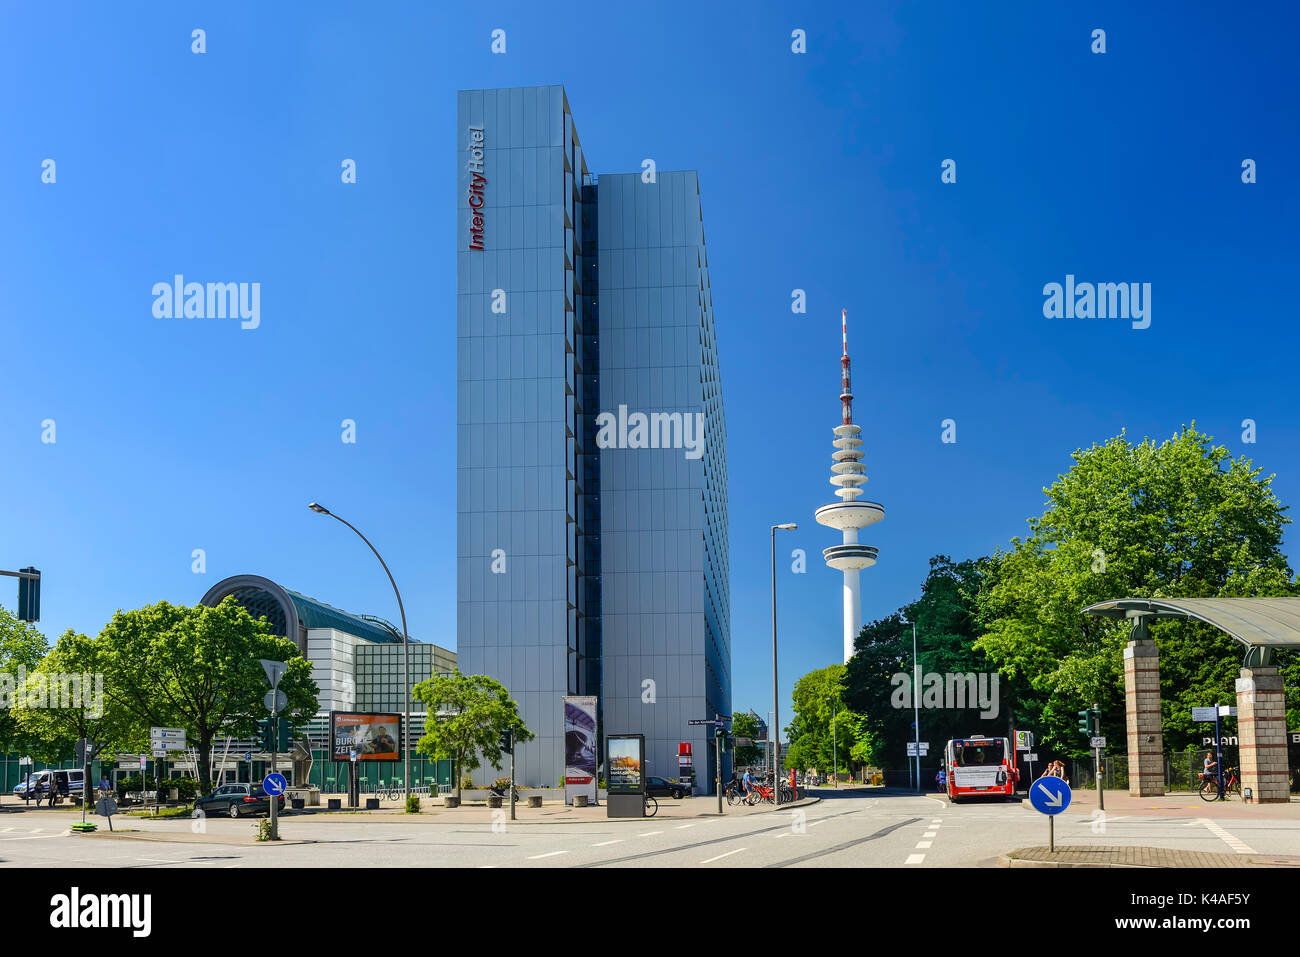 Fair Entrance East And Intercity Hotel In Hamburg, Germany - Stock Image